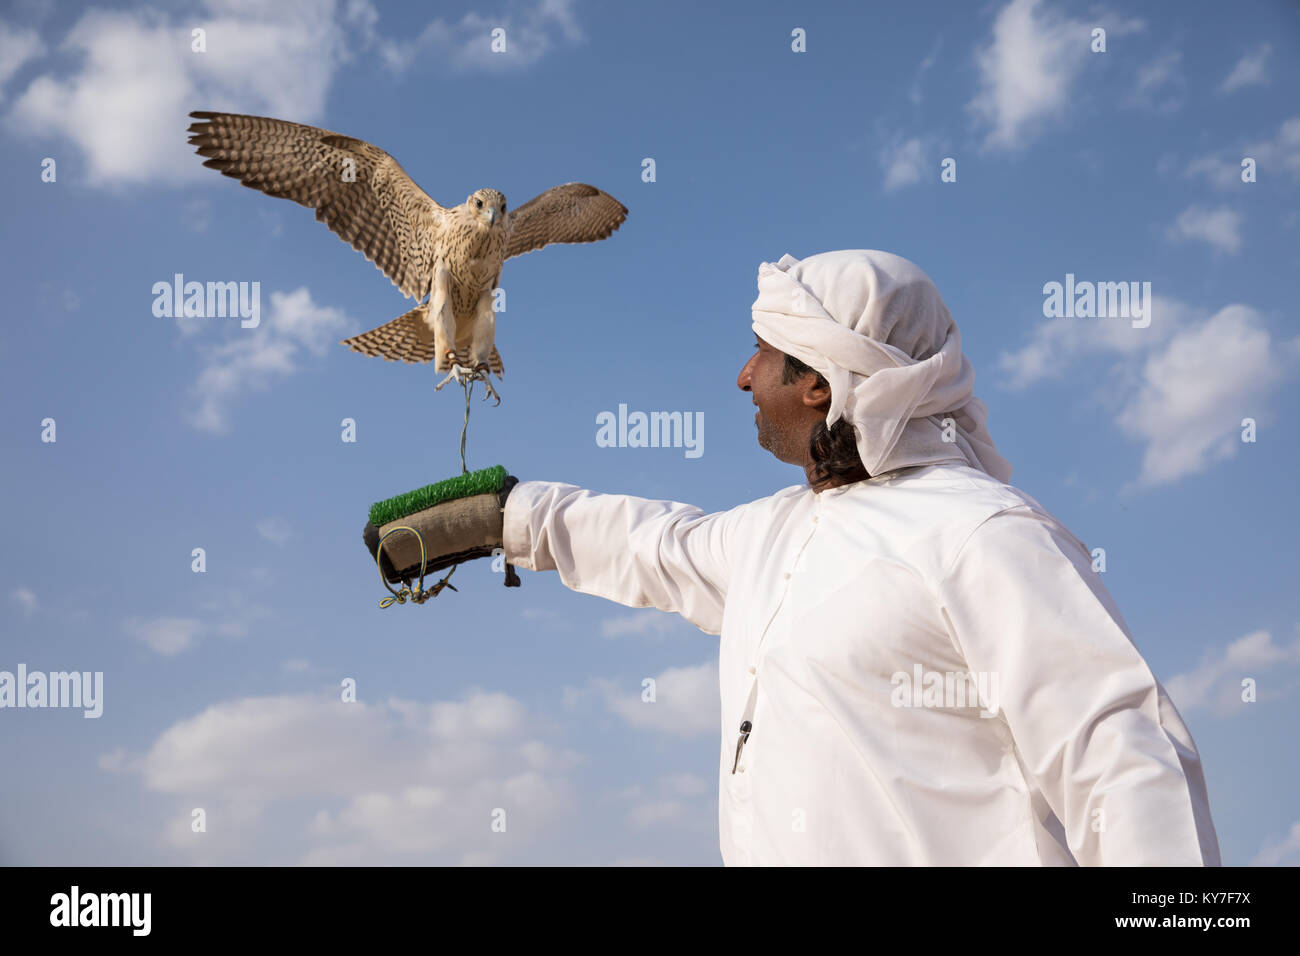 Abu Dhabi, UAE - Dec 15, 2017: Man in a traditional emirati dress proudly posing with his trained show falcon. Stock Photo